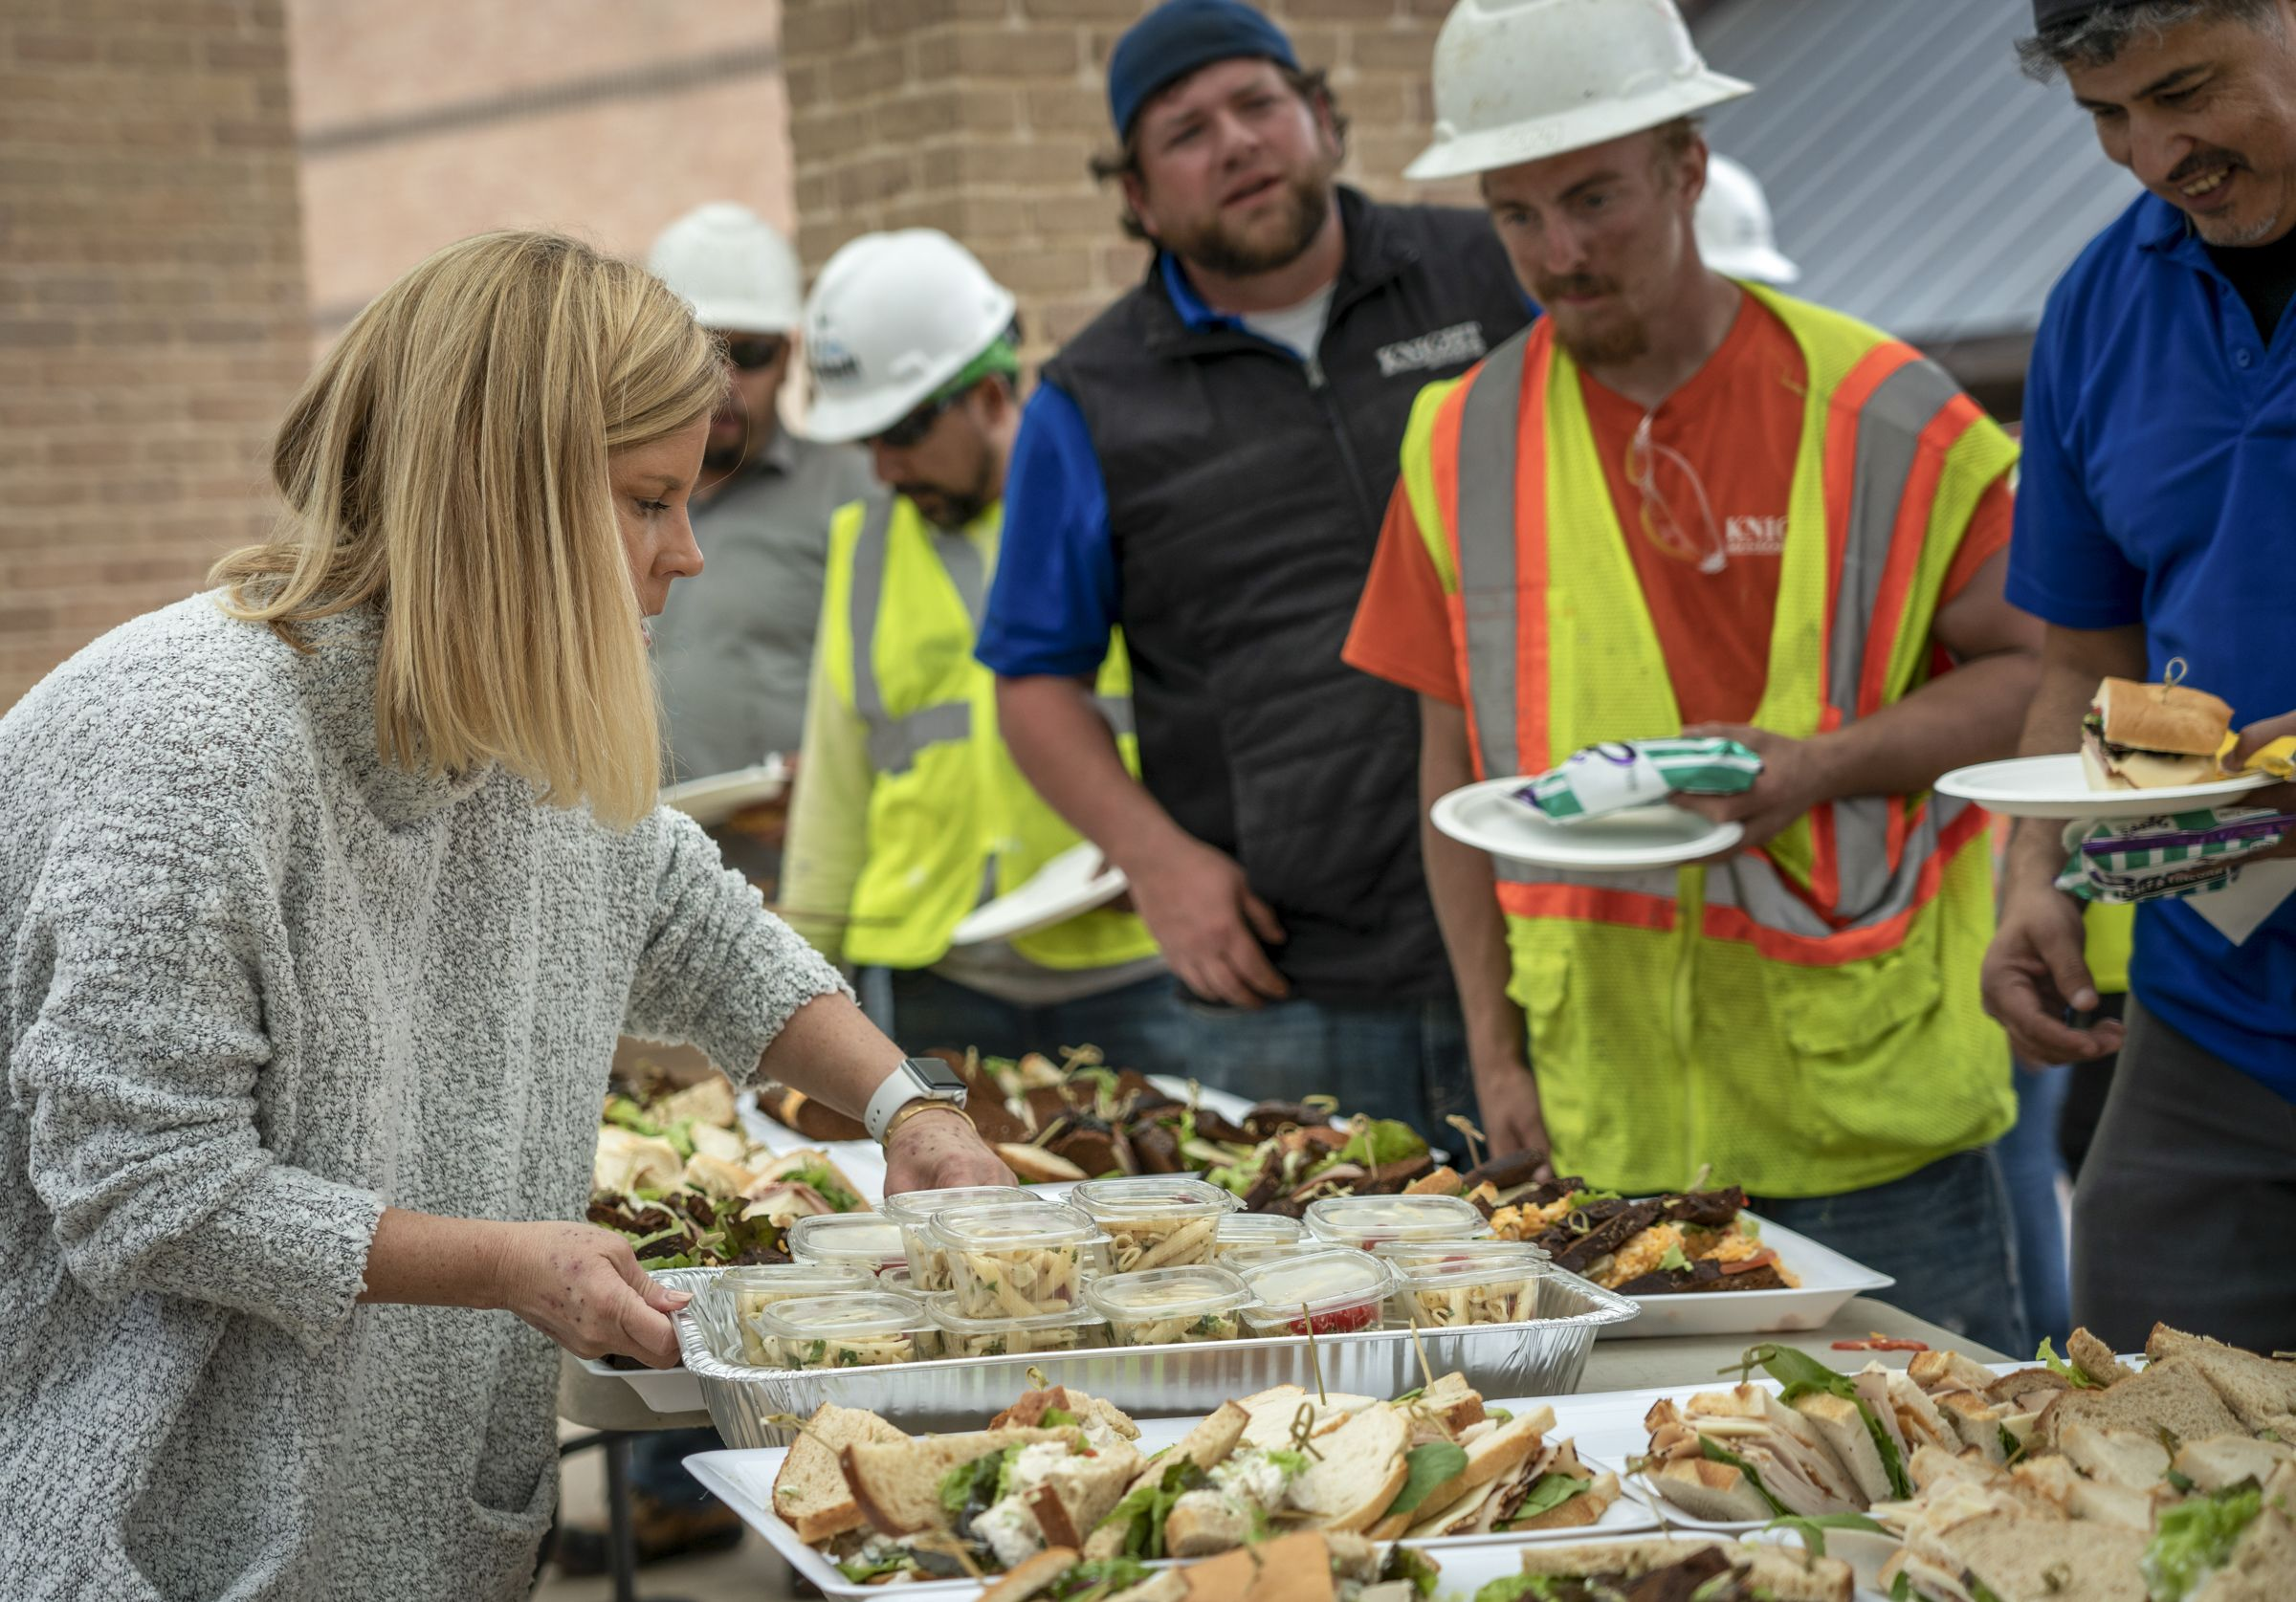 Nancy Dini leads volunteers in providing lunch to the campus workers.